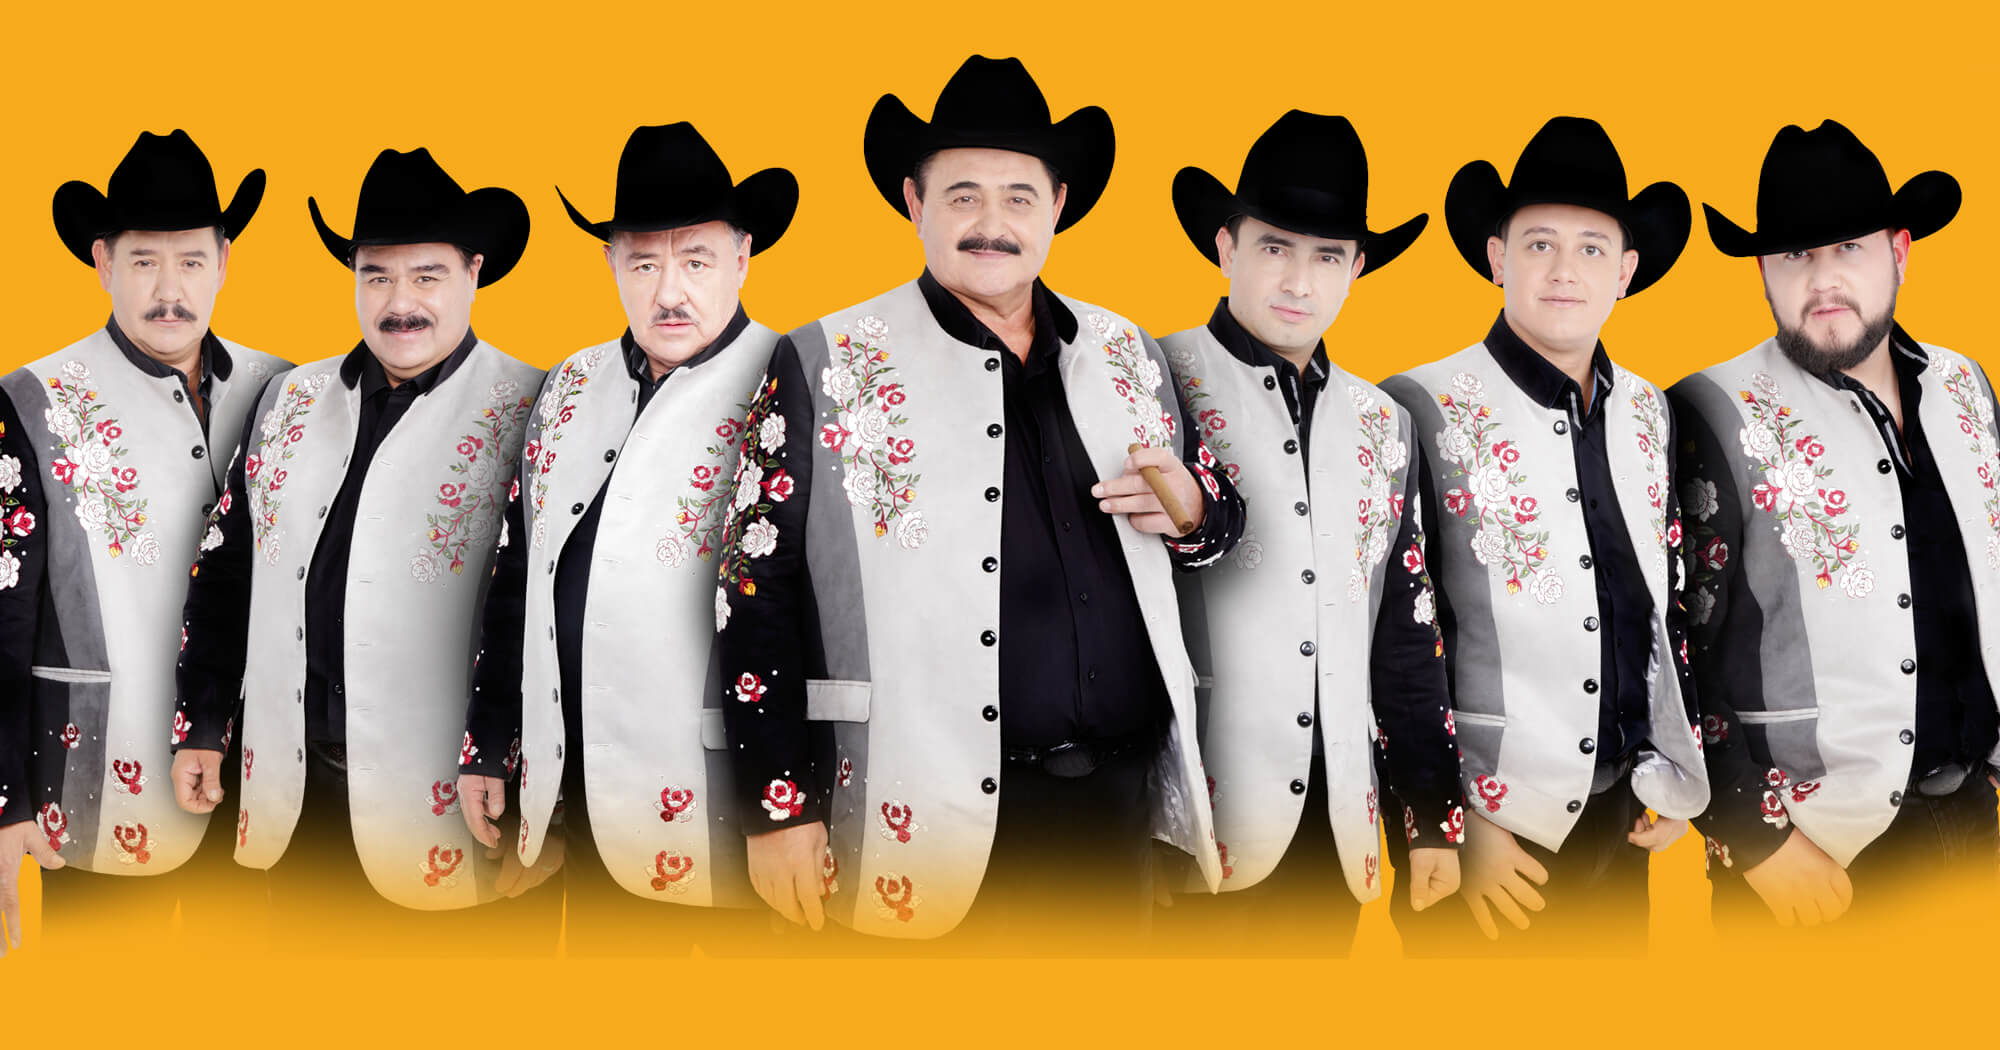 Los Huracanes Del Norte will perform at the Annual Festival of the Lakes (Hammond, Indiana) on Sunday, July 21, 2019